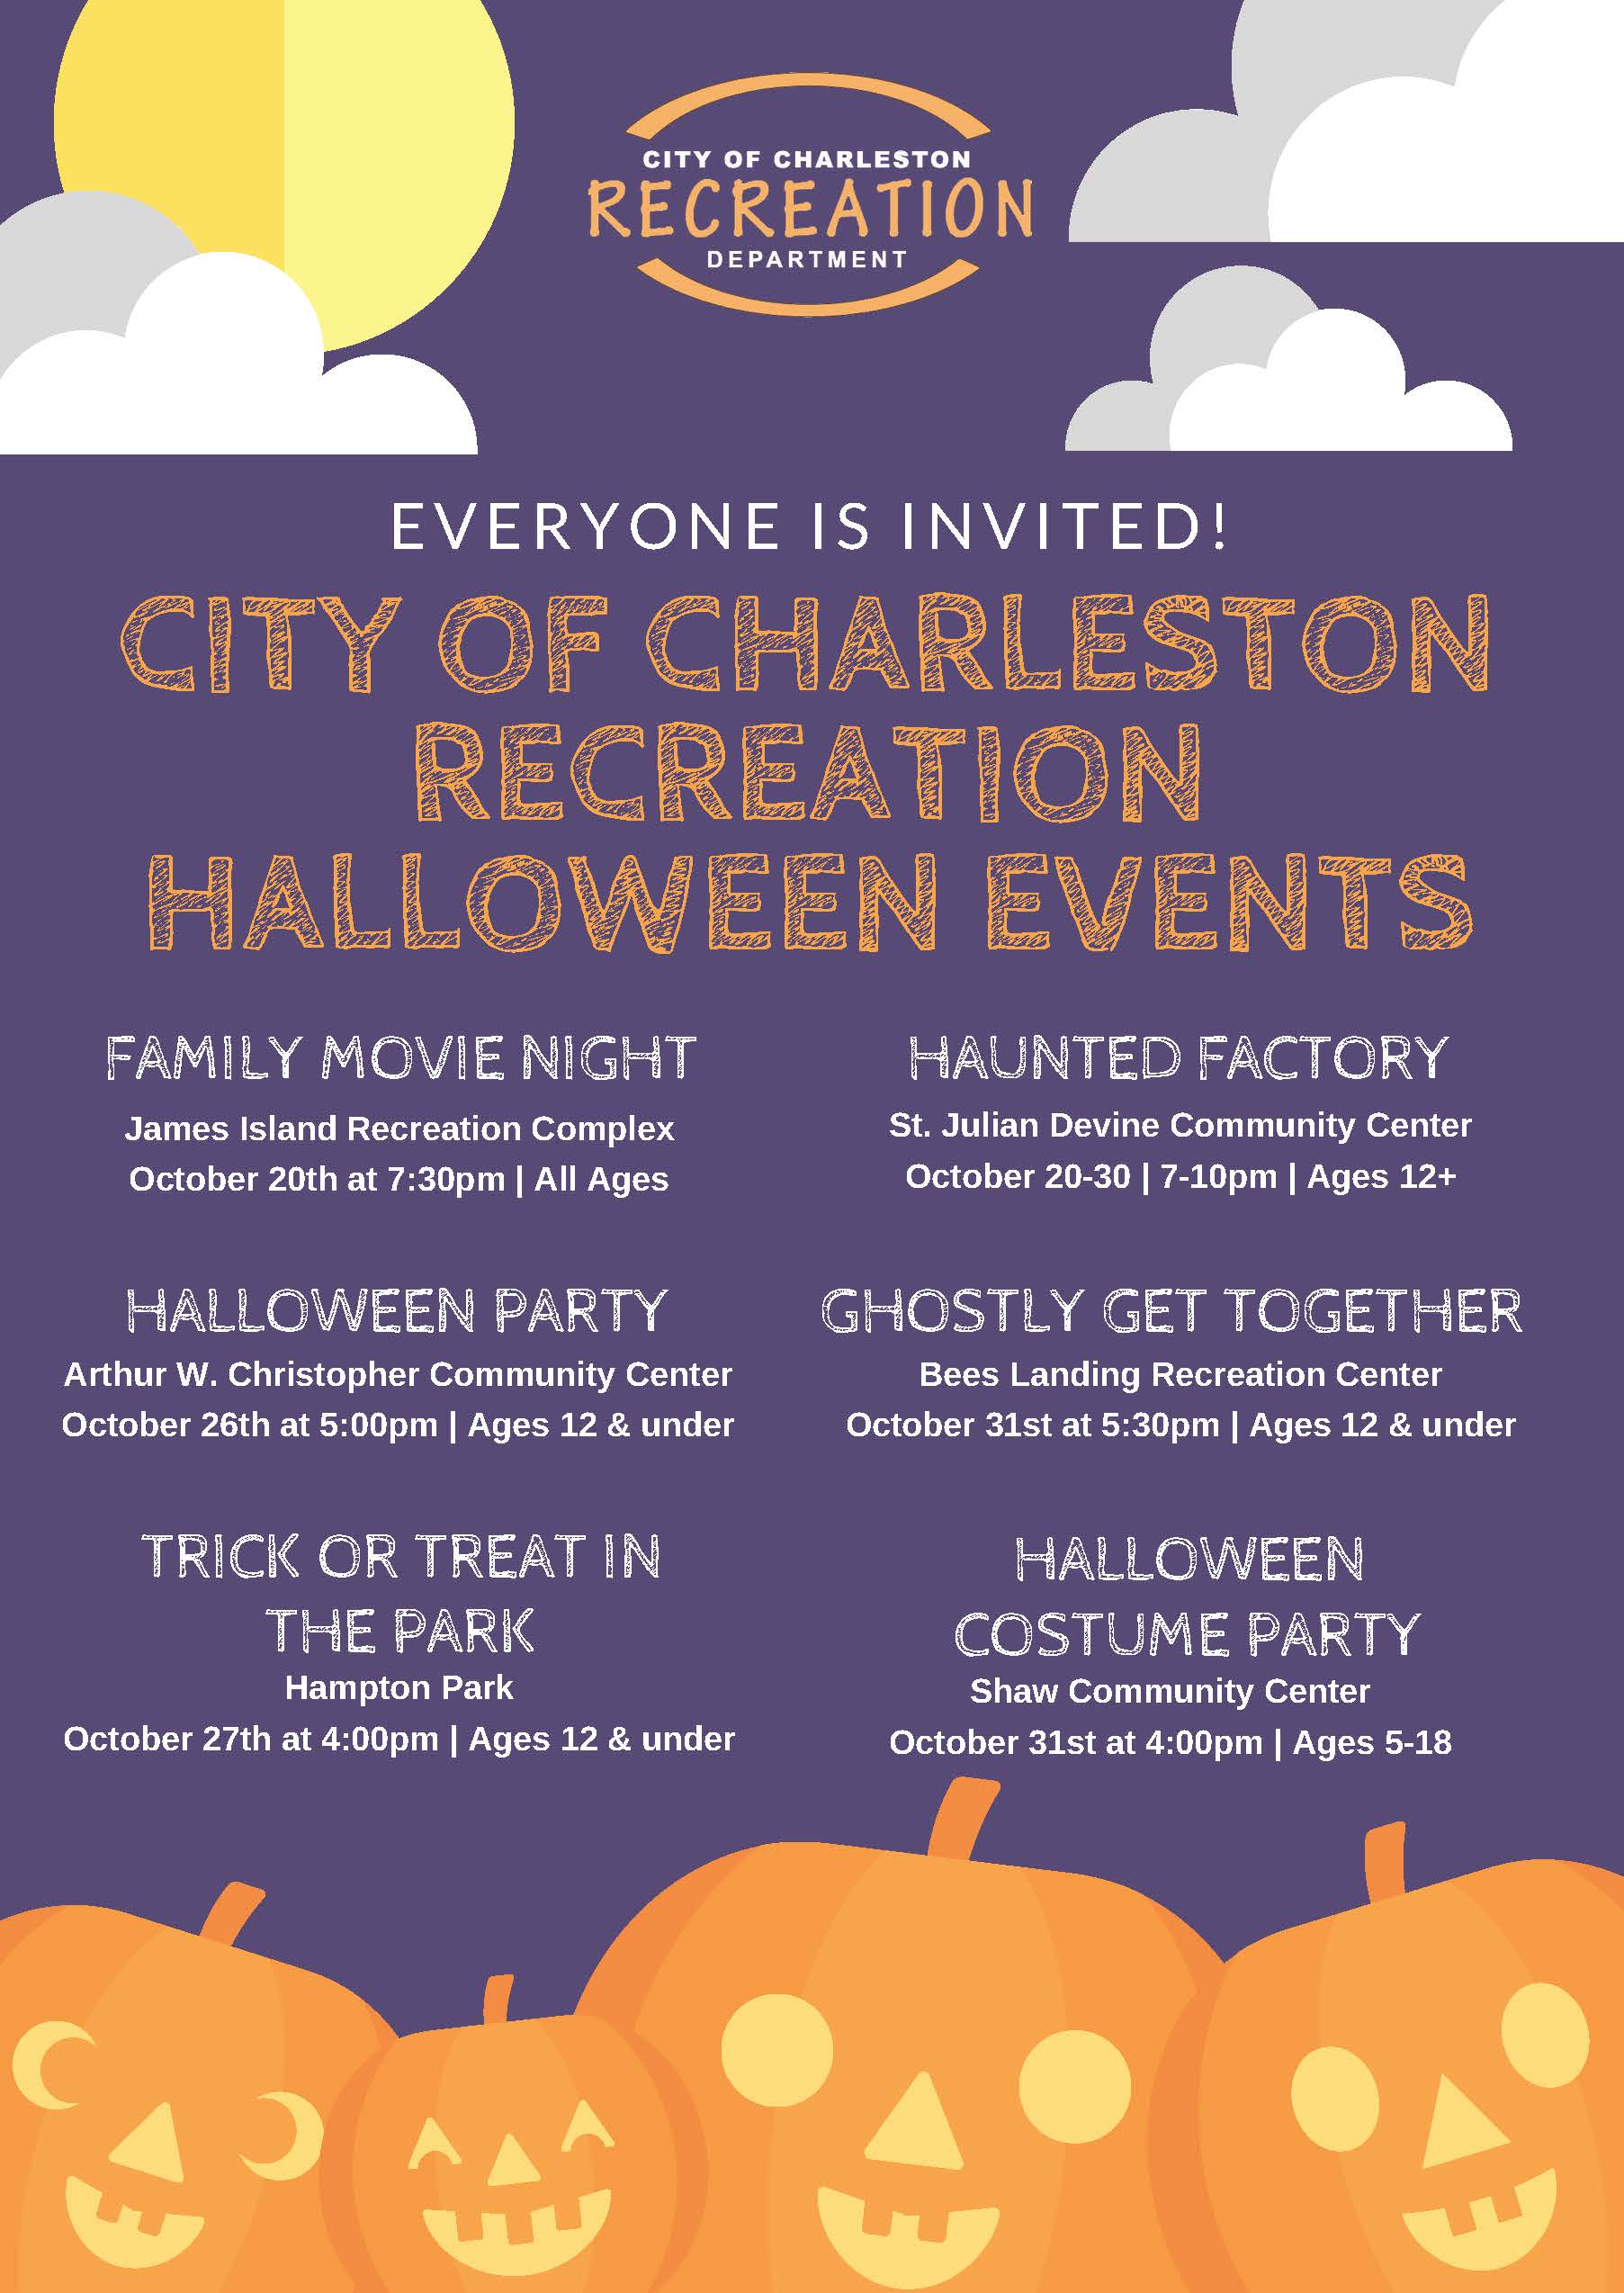 City Halloween Events 2017.jpg